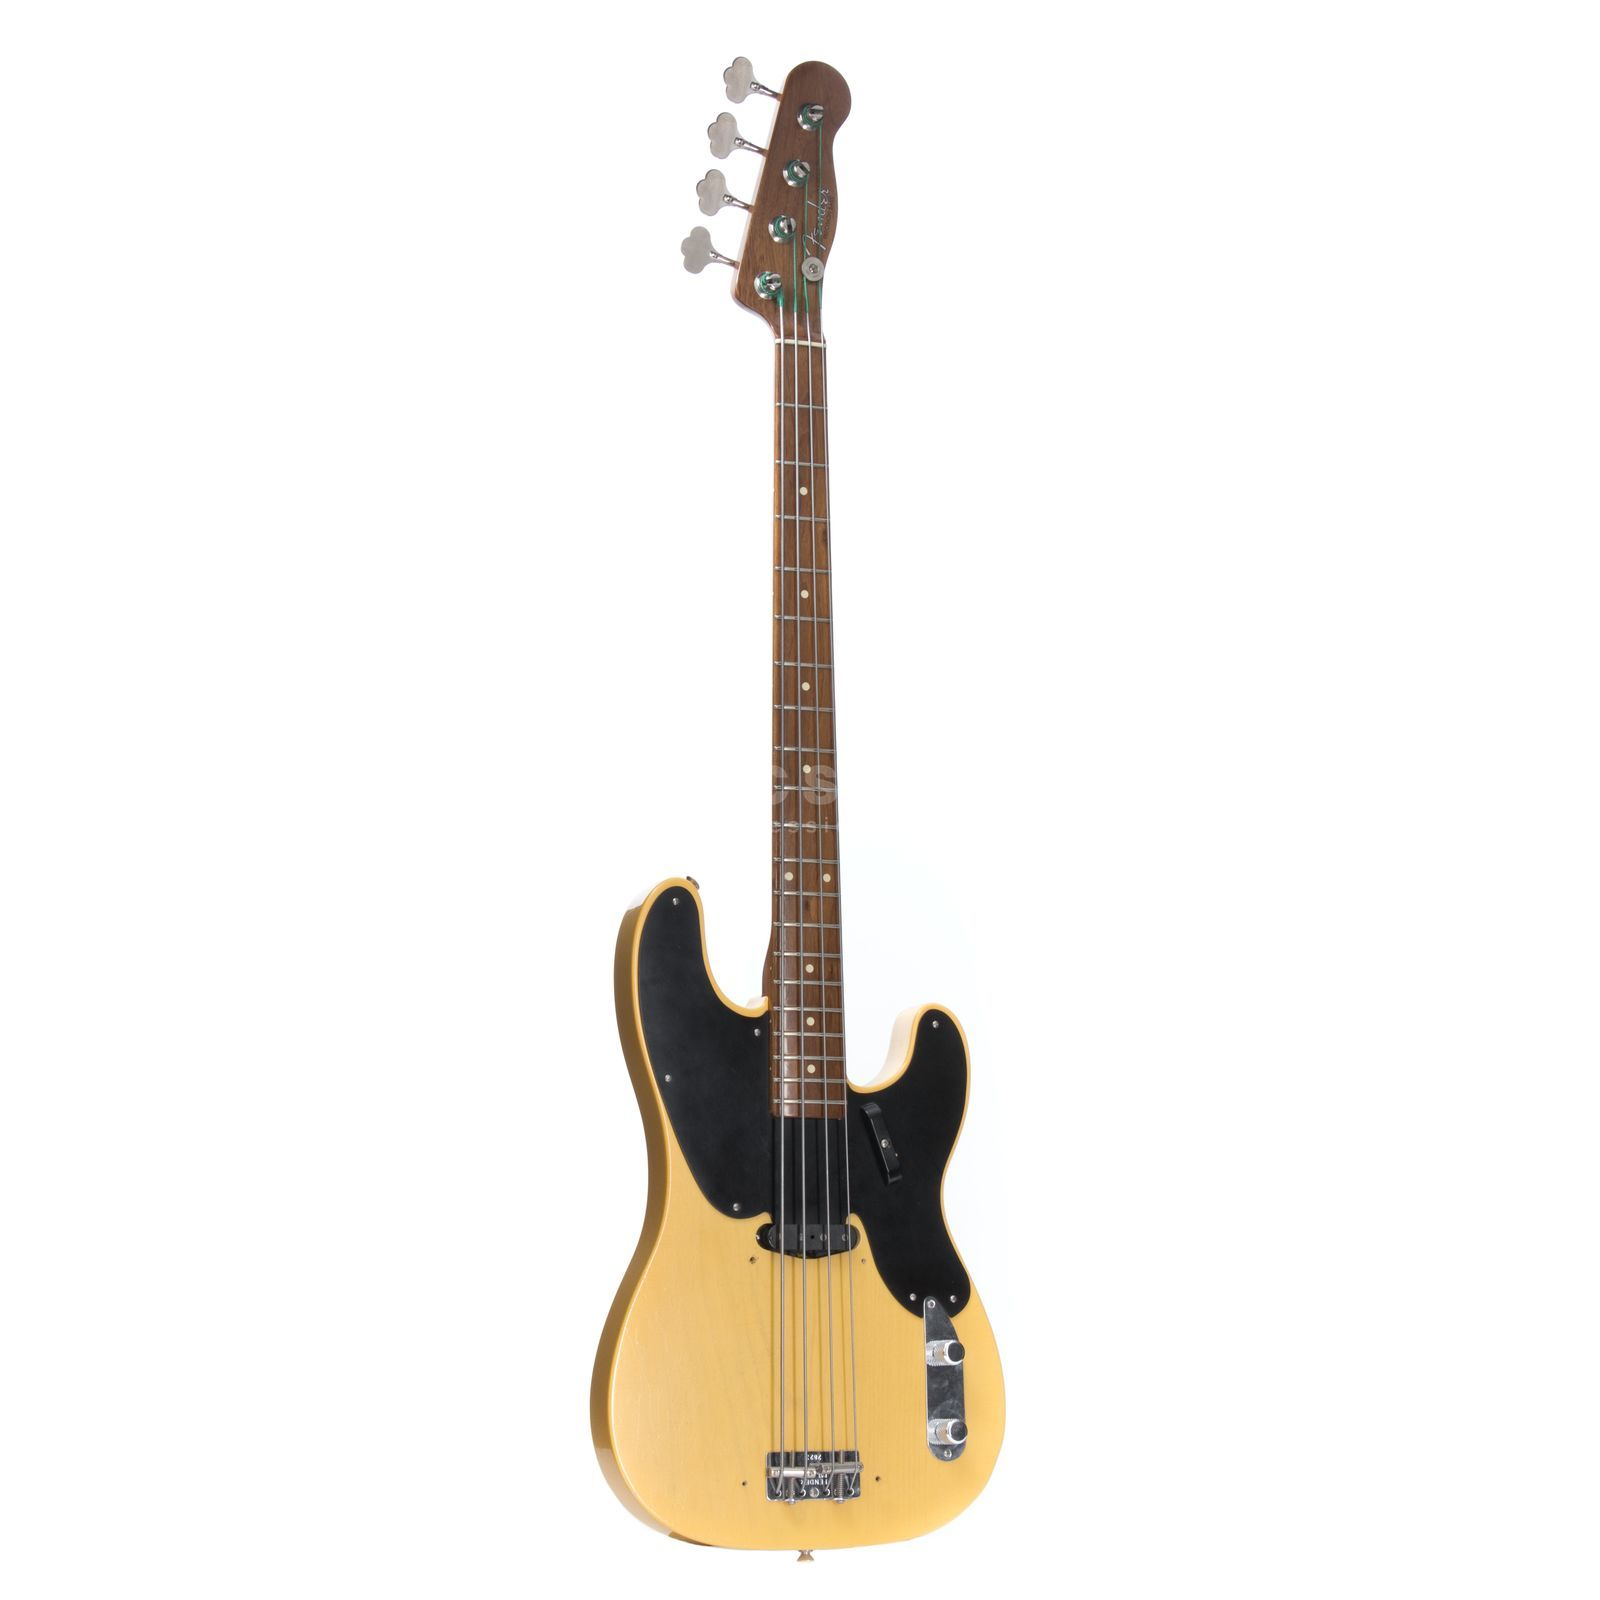 Fender CS '51 P-Bass Walnut Neck NBL Nocaster Blonde, S#:2823 Zdjęcie produktu